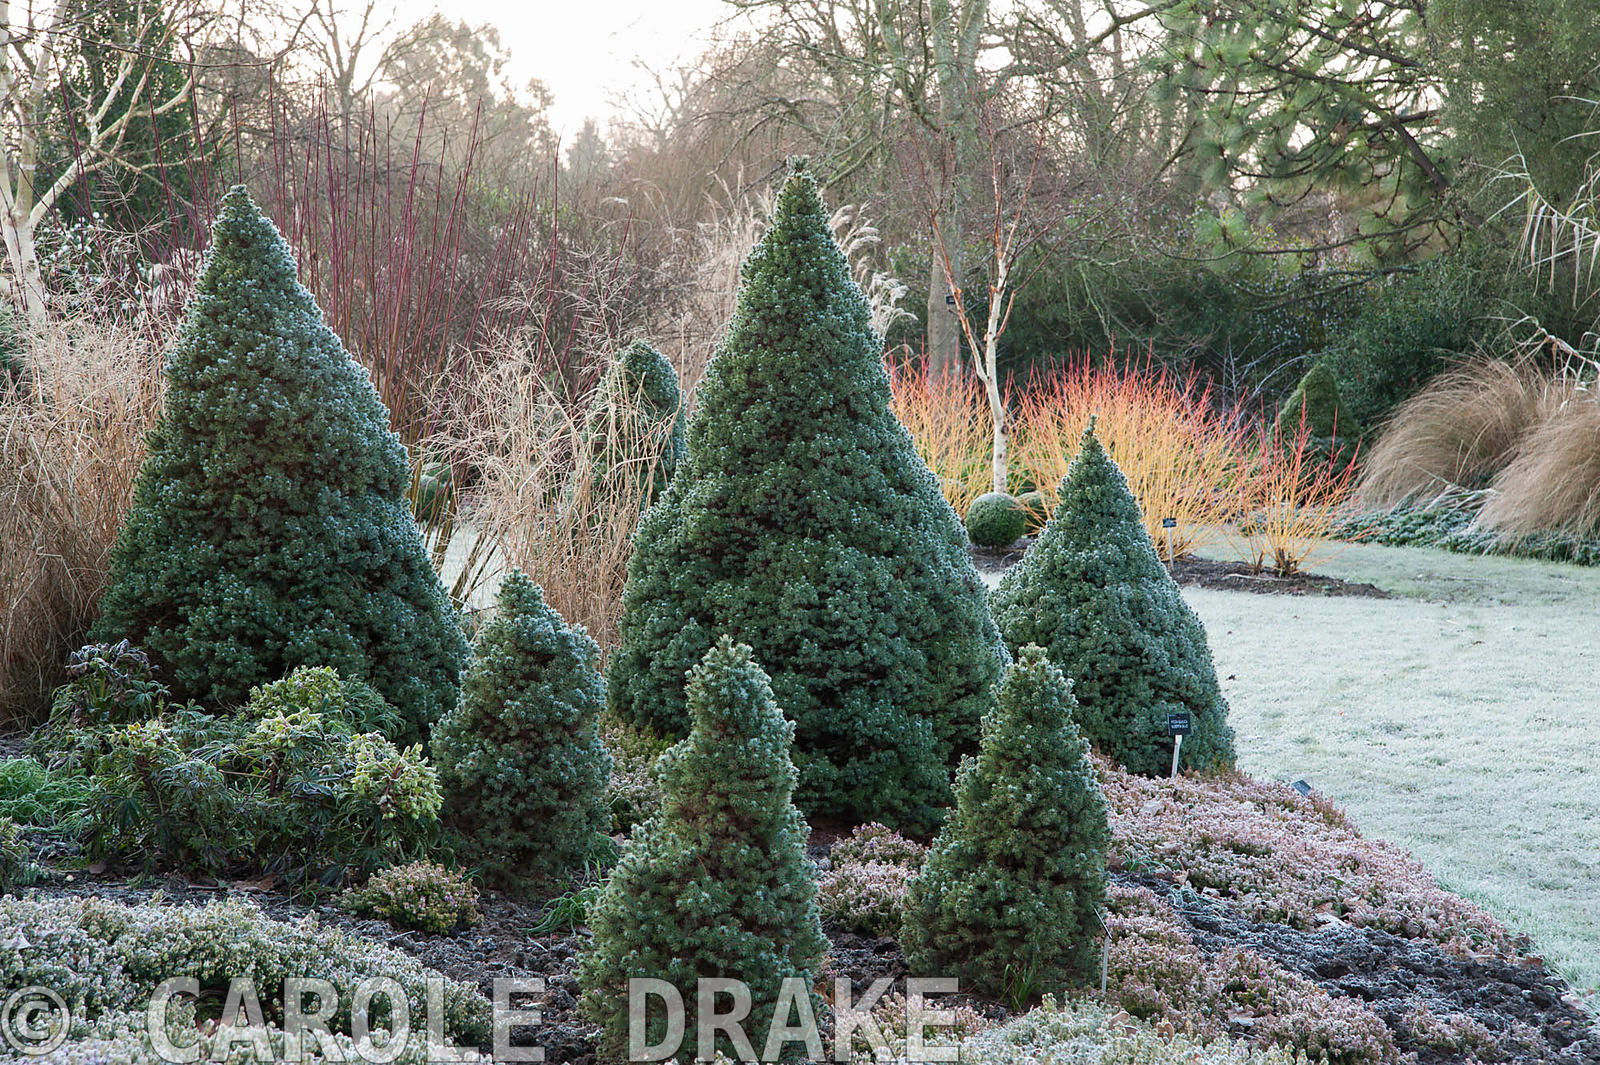 Picea glauca Alberta Blue, 'Haal', with heathers and white stemmed birch. Sir Harold Hillier Gardens, Ampfield, Romsey, Hants...